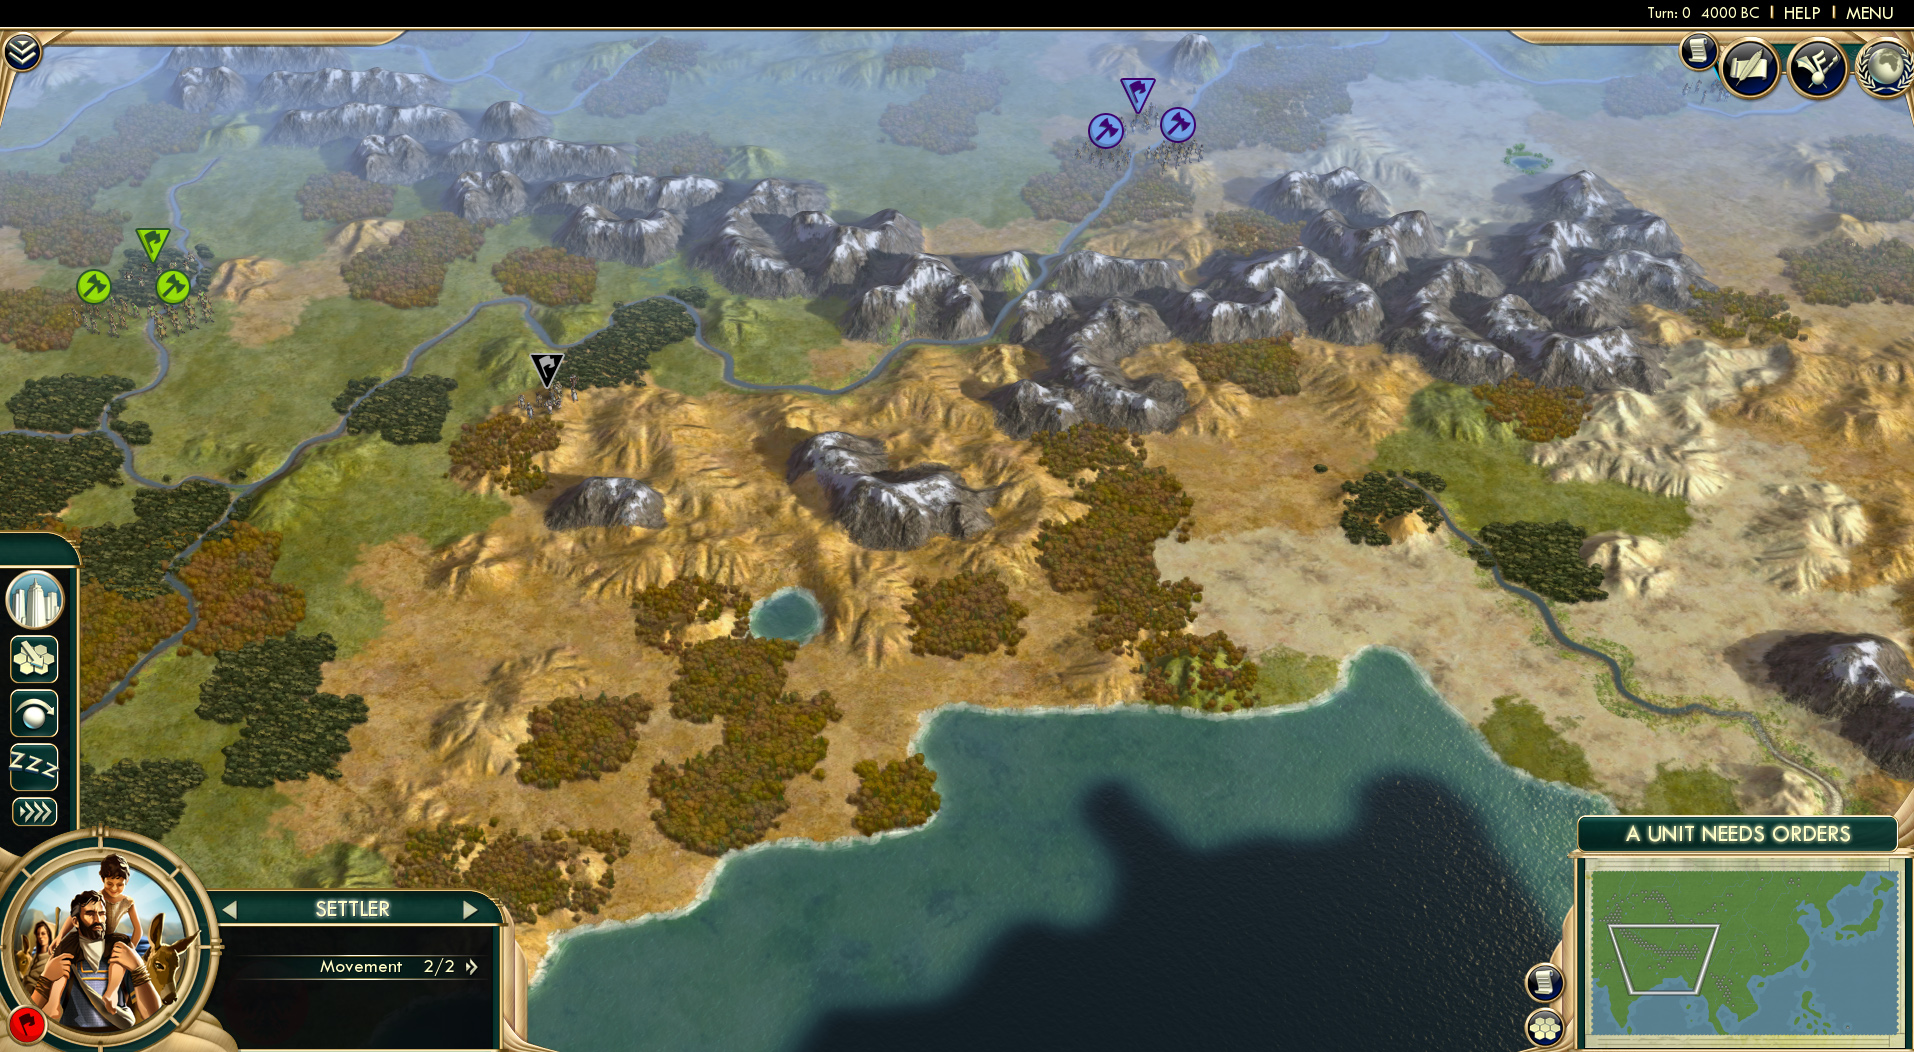 2k_civ-v_scrambled-continents-map-pack_east-asia-3